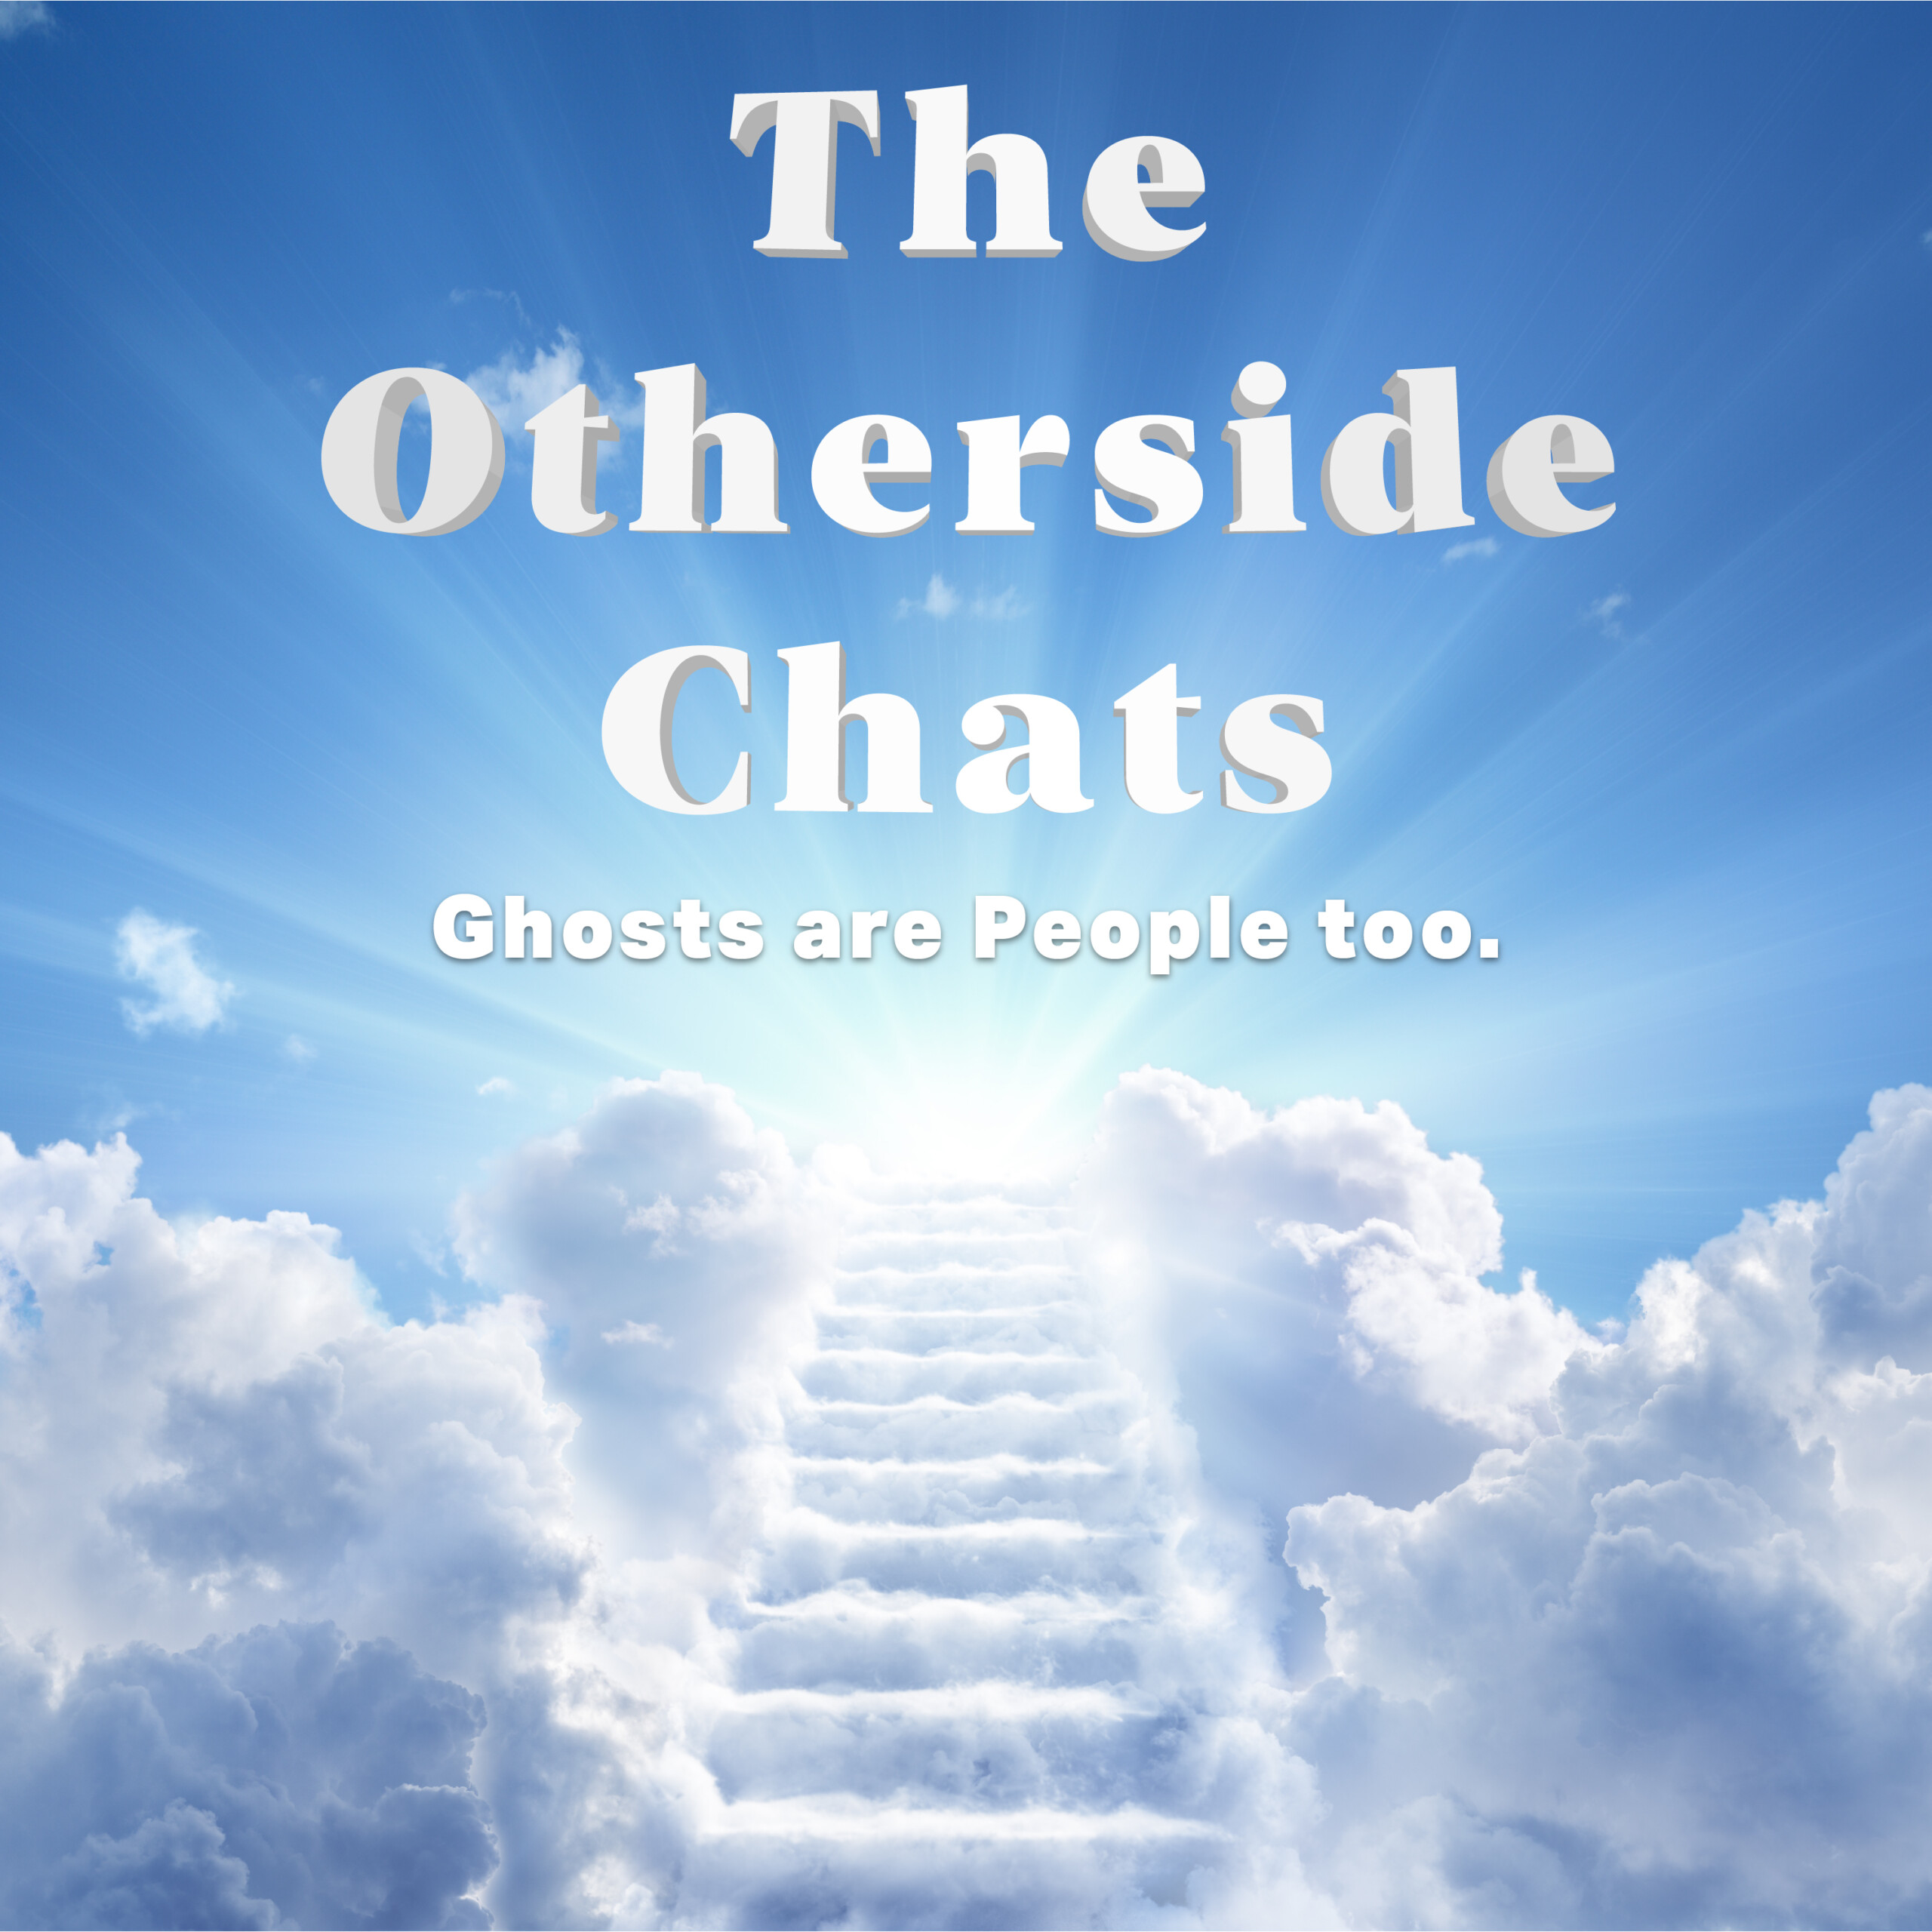 otherside chats